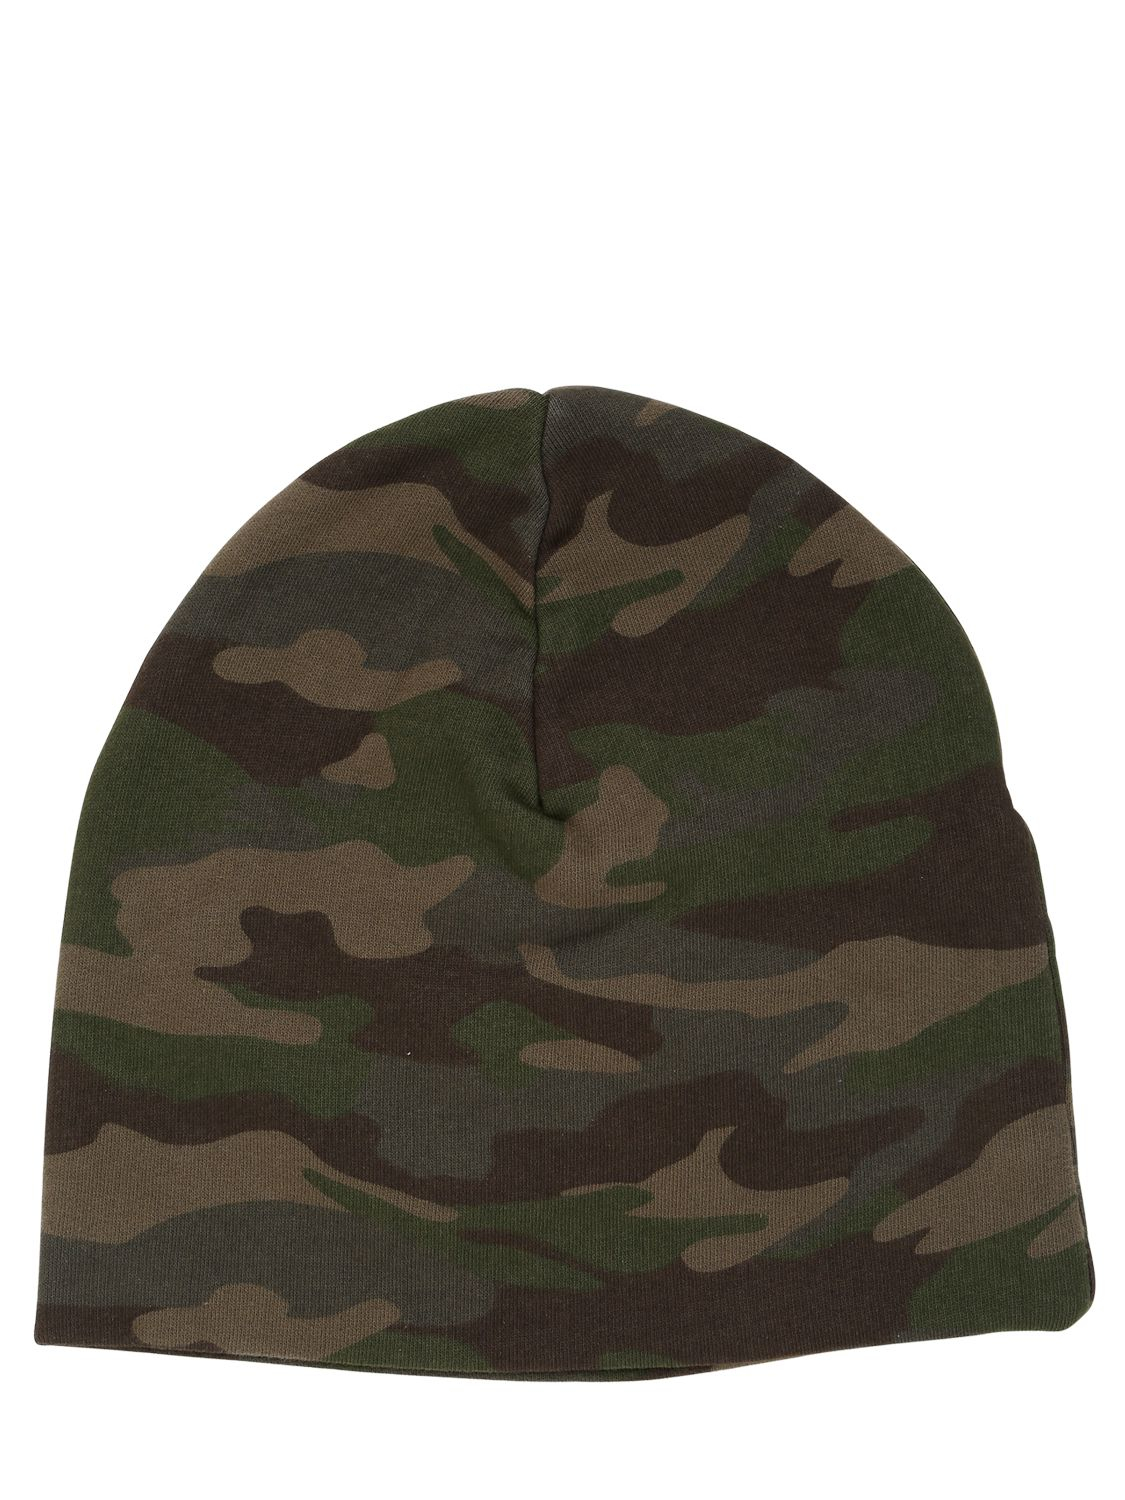 e7afd17629d Lyst - Hydrogen Camouflage Cotton Beanie Hat in Green for Men